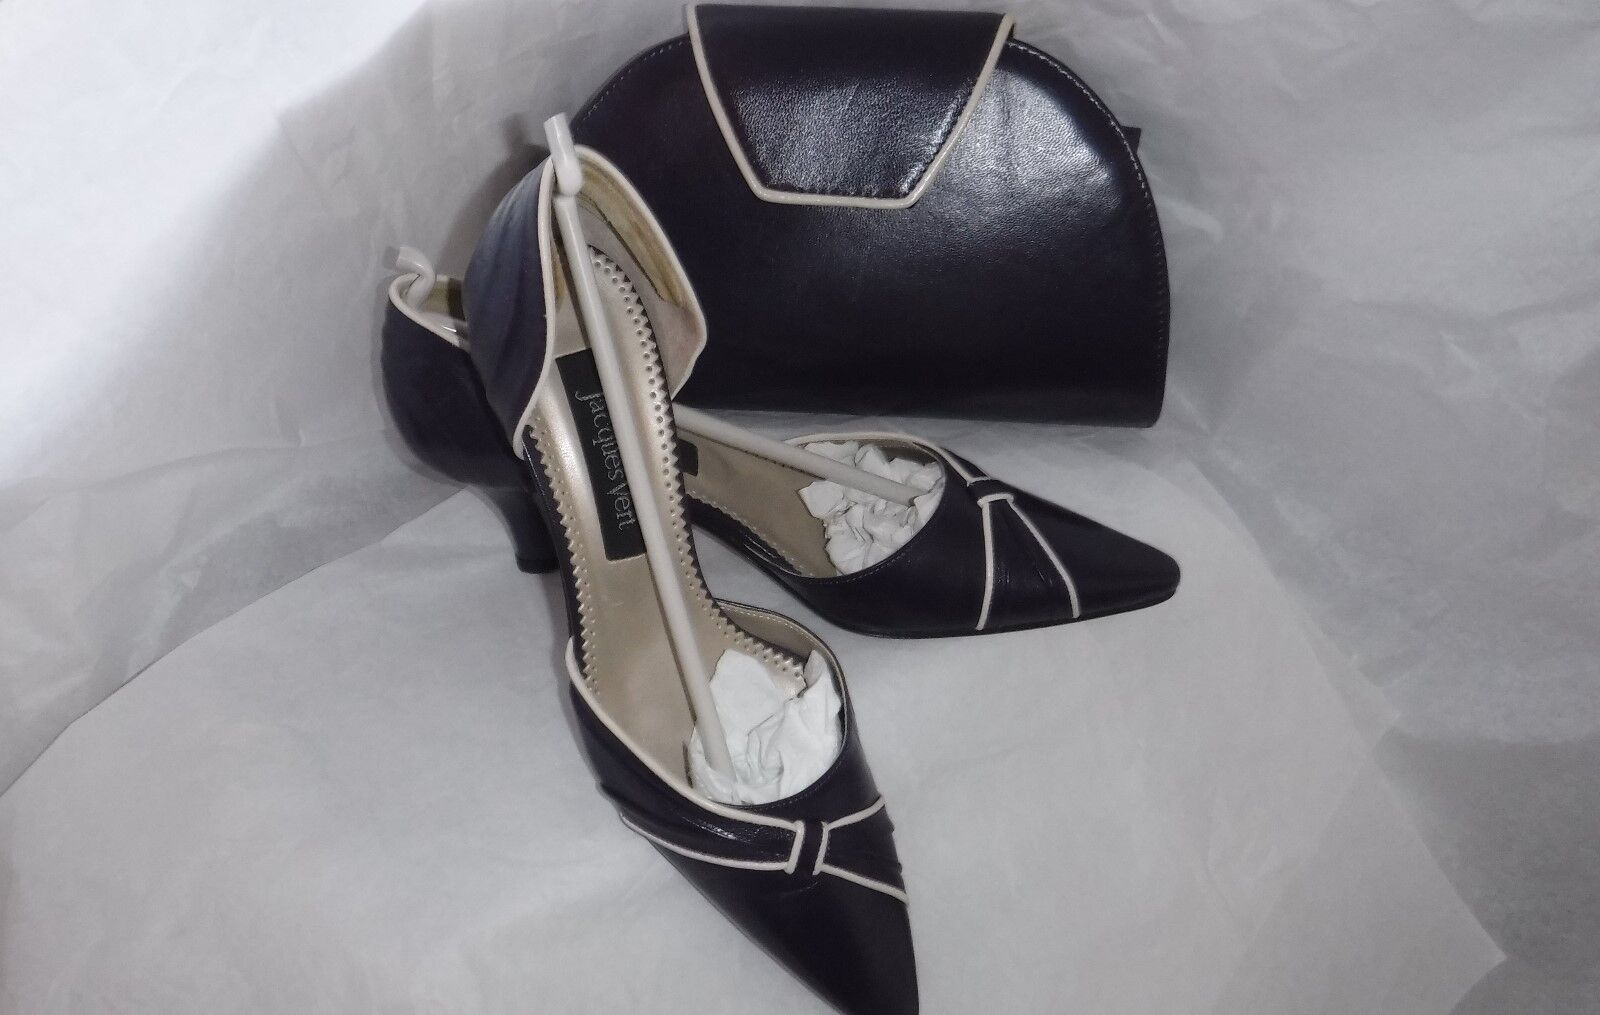 # JACQUES VERT Schuhe & BAG PURPLE/IVORY SIZE 38 UK 5. SIZE 4 ALSO AVAILABLE